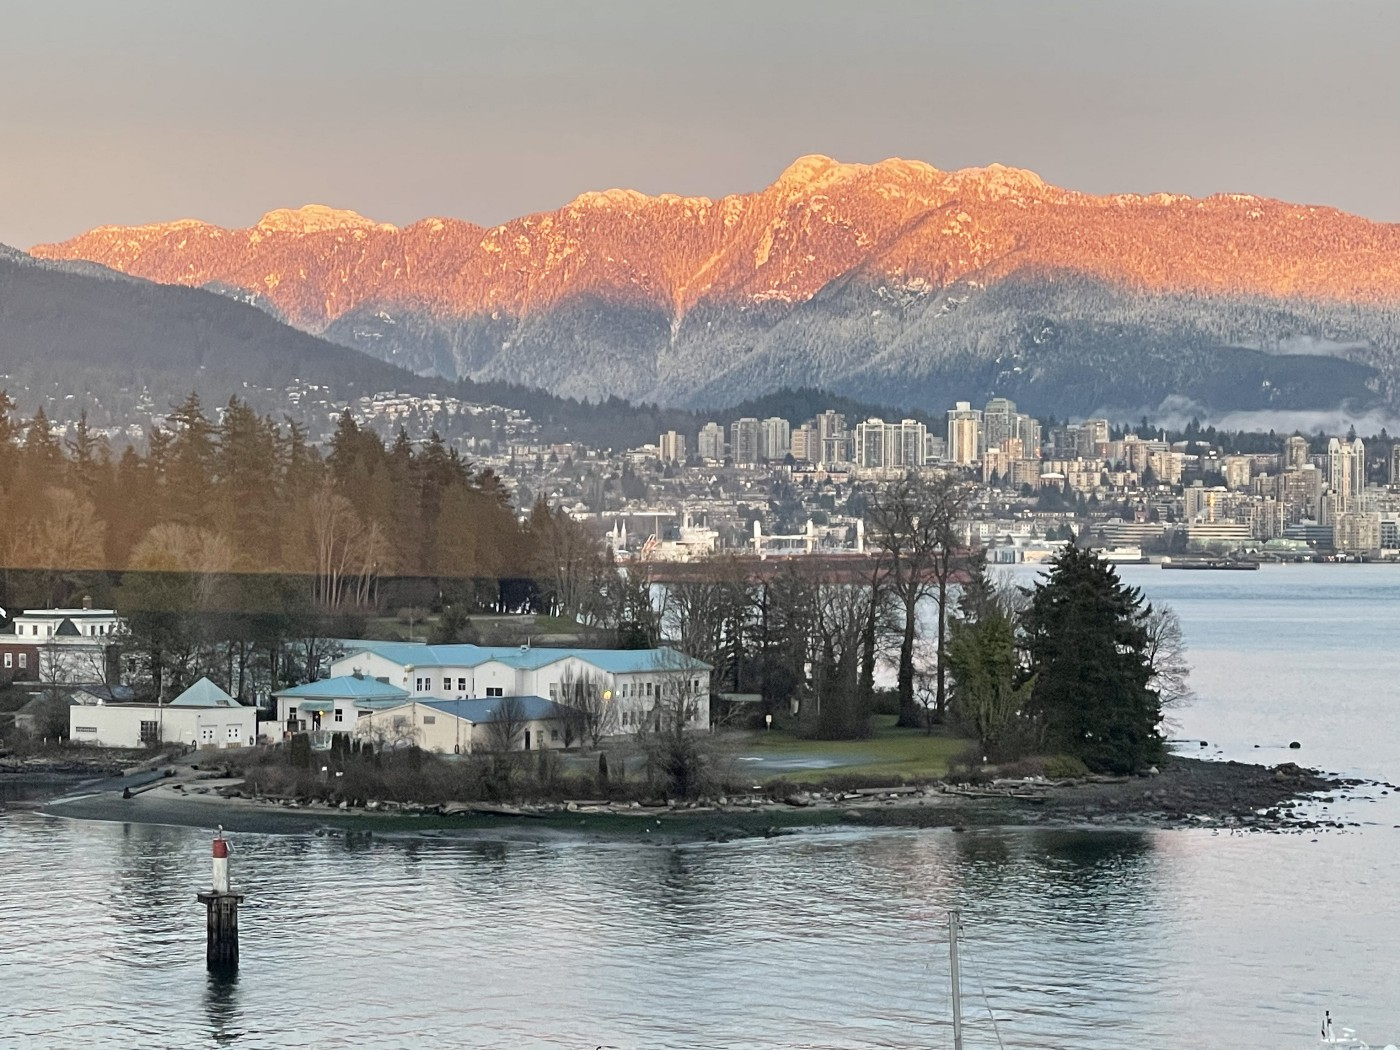 Rosy late light illuminating snow covered mountains behind sky scrappers. A harbour island with evergreen  forest, mists